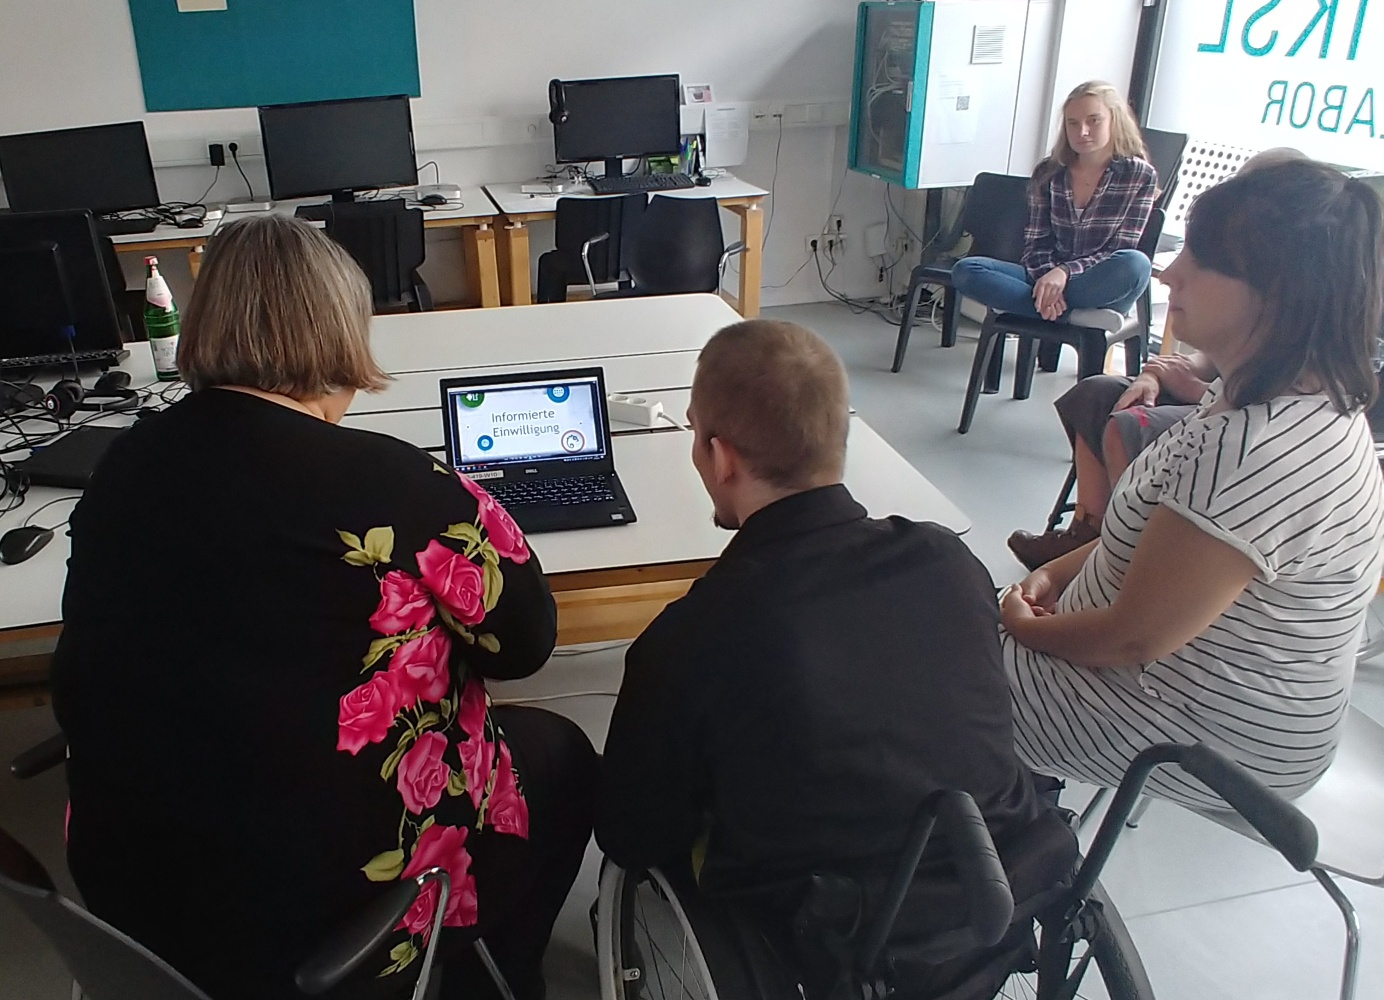 Monika and Dominik sit at a table in front of a laptop. A video of the Informed Consent is opened on the laptop.